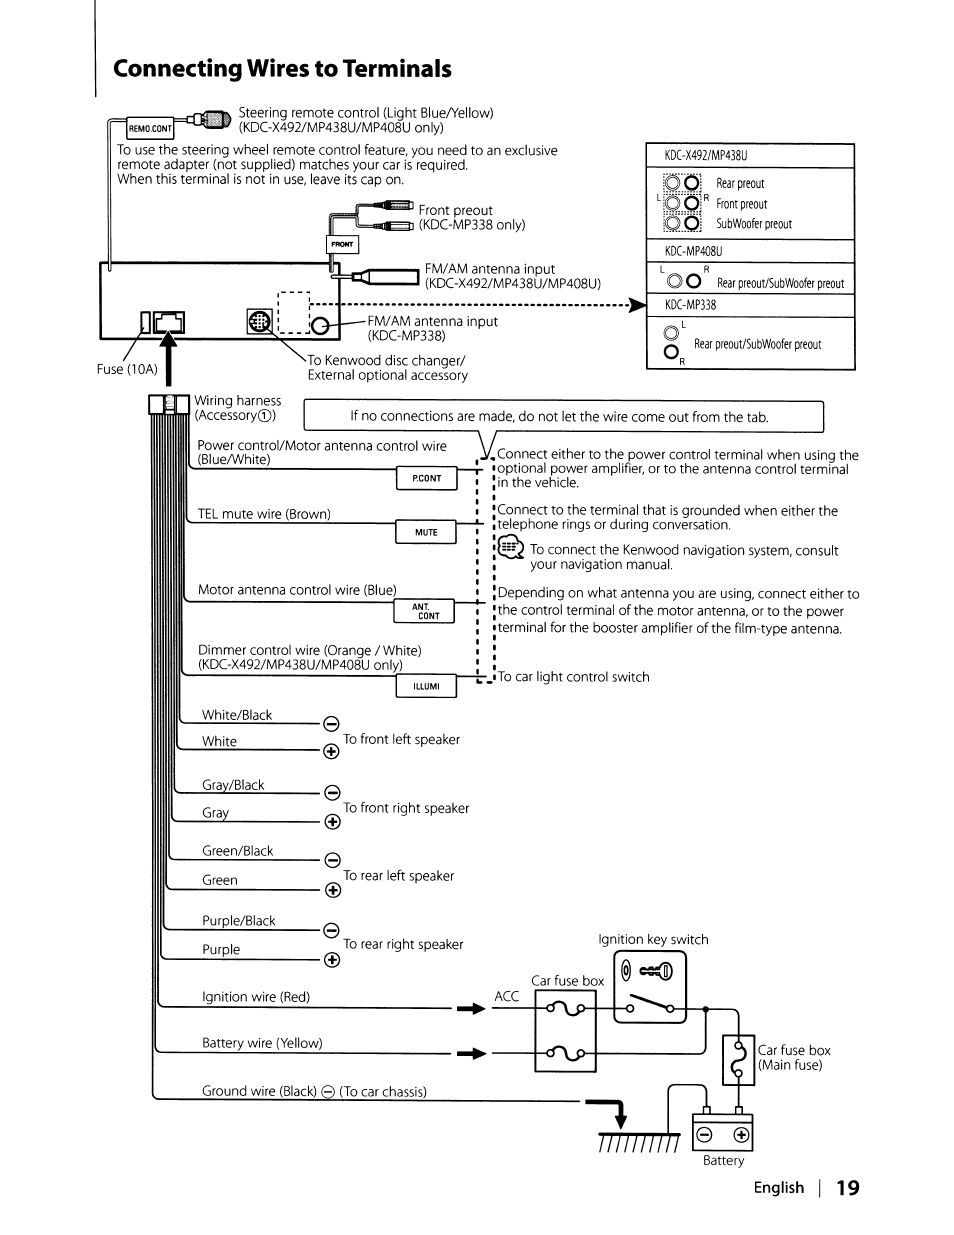 Connecting Wires To Terminals English I 19 Kenwood Kdc Mp408u Car Fuse Box Are Grounded User Manual Page 32